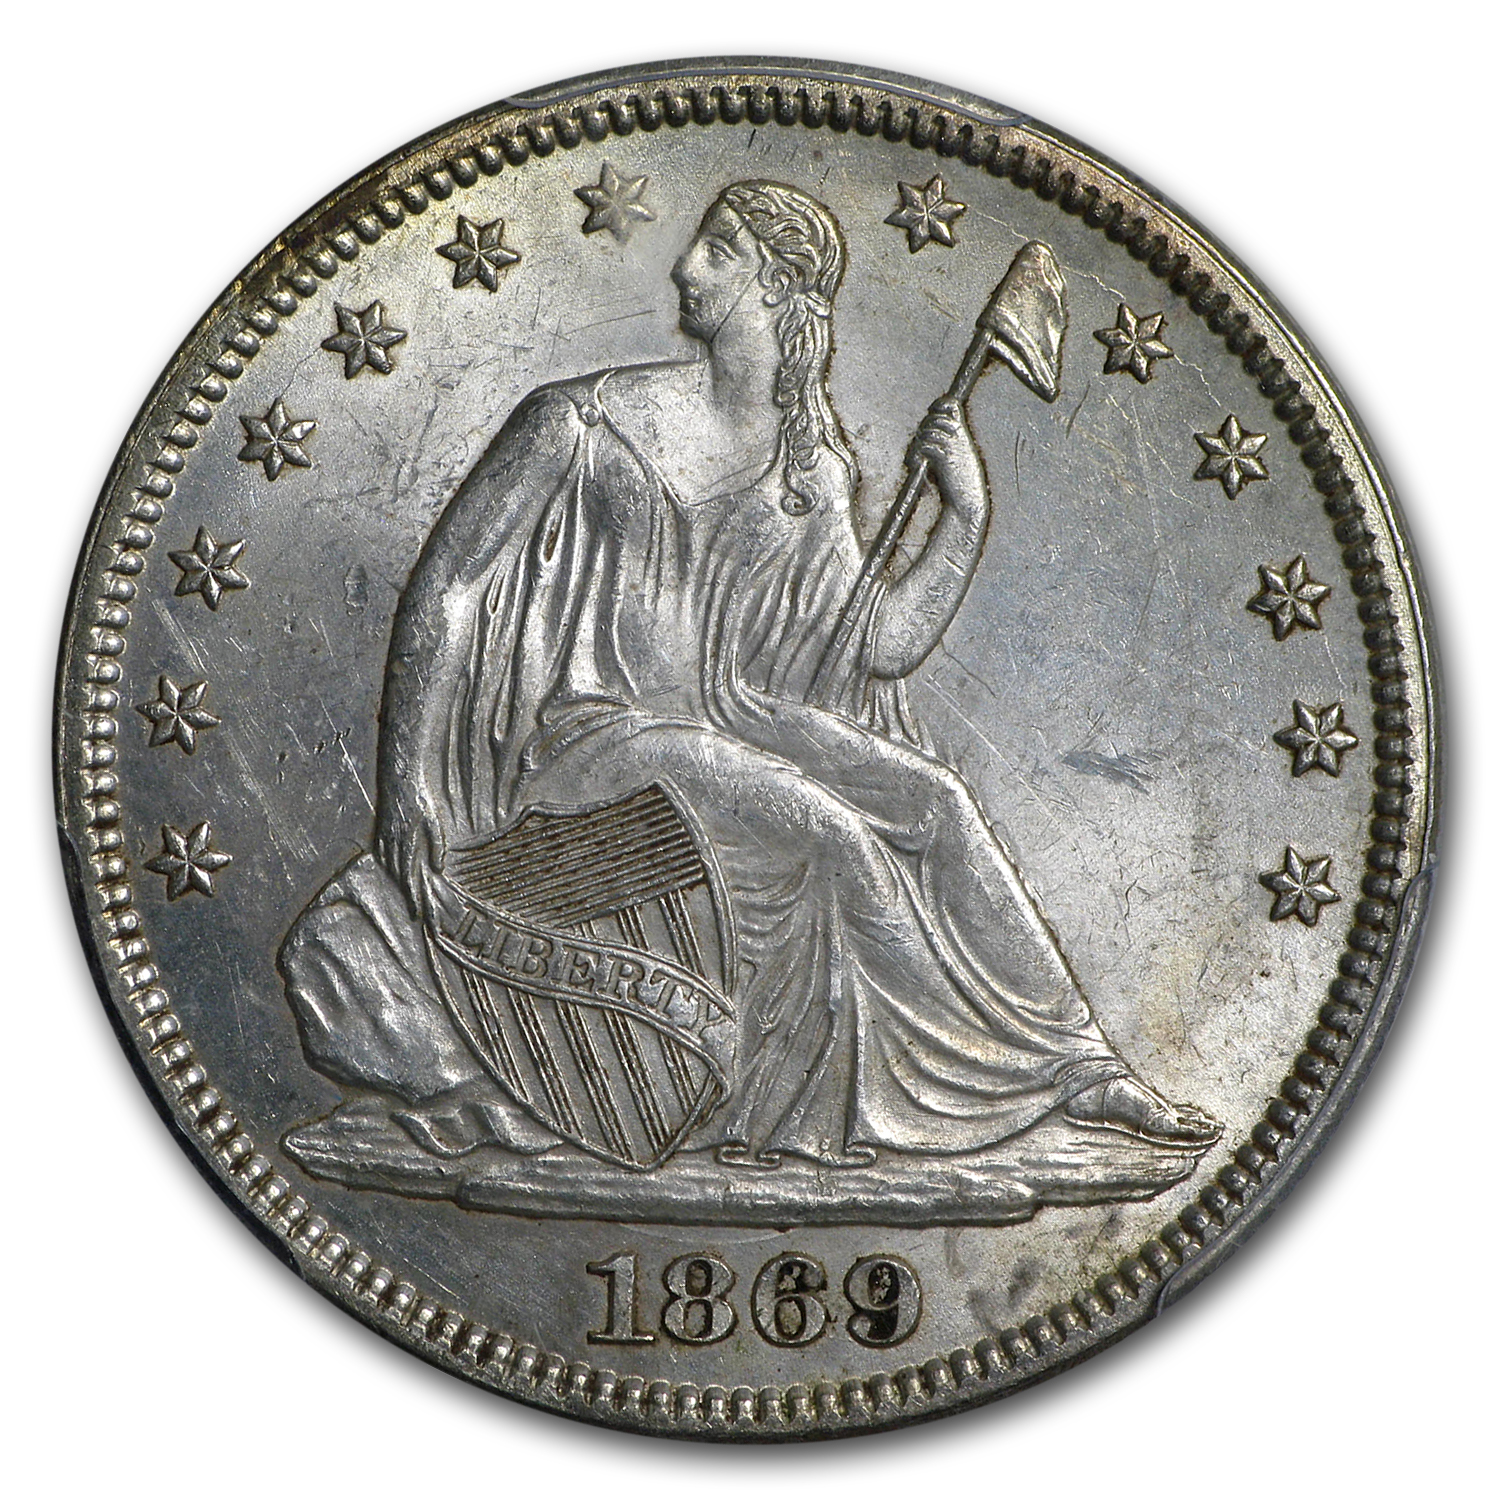 1869 Liberty Seated Half Dollar MS-63 PCGS